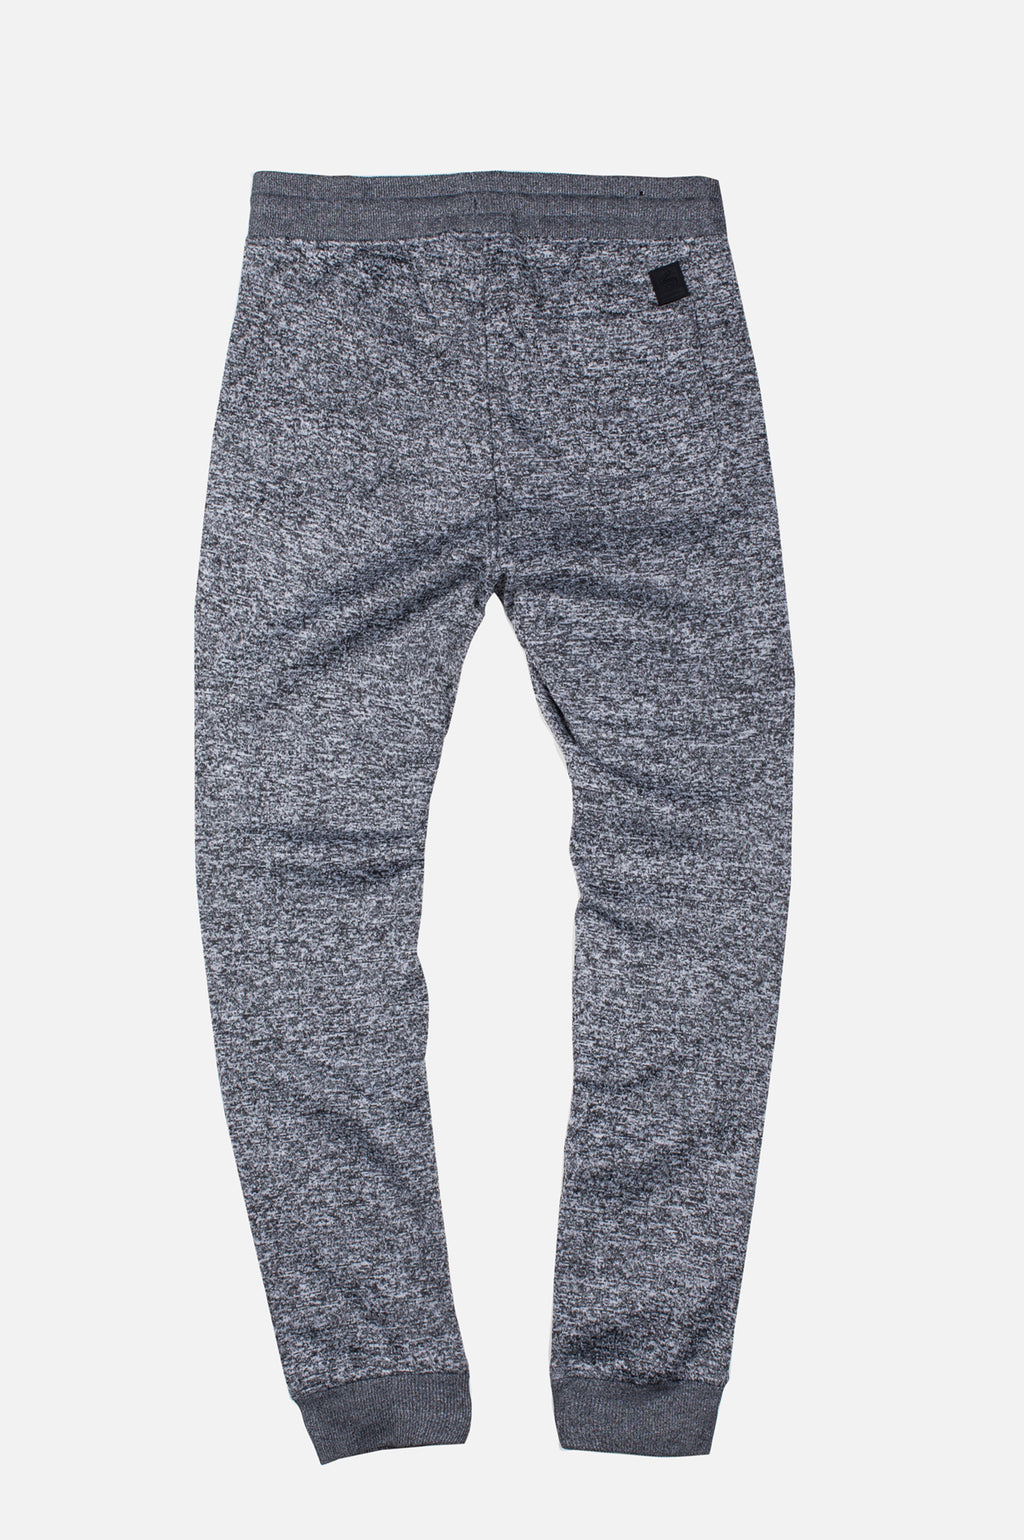 Southpole Mens Marled Fleece Jogger